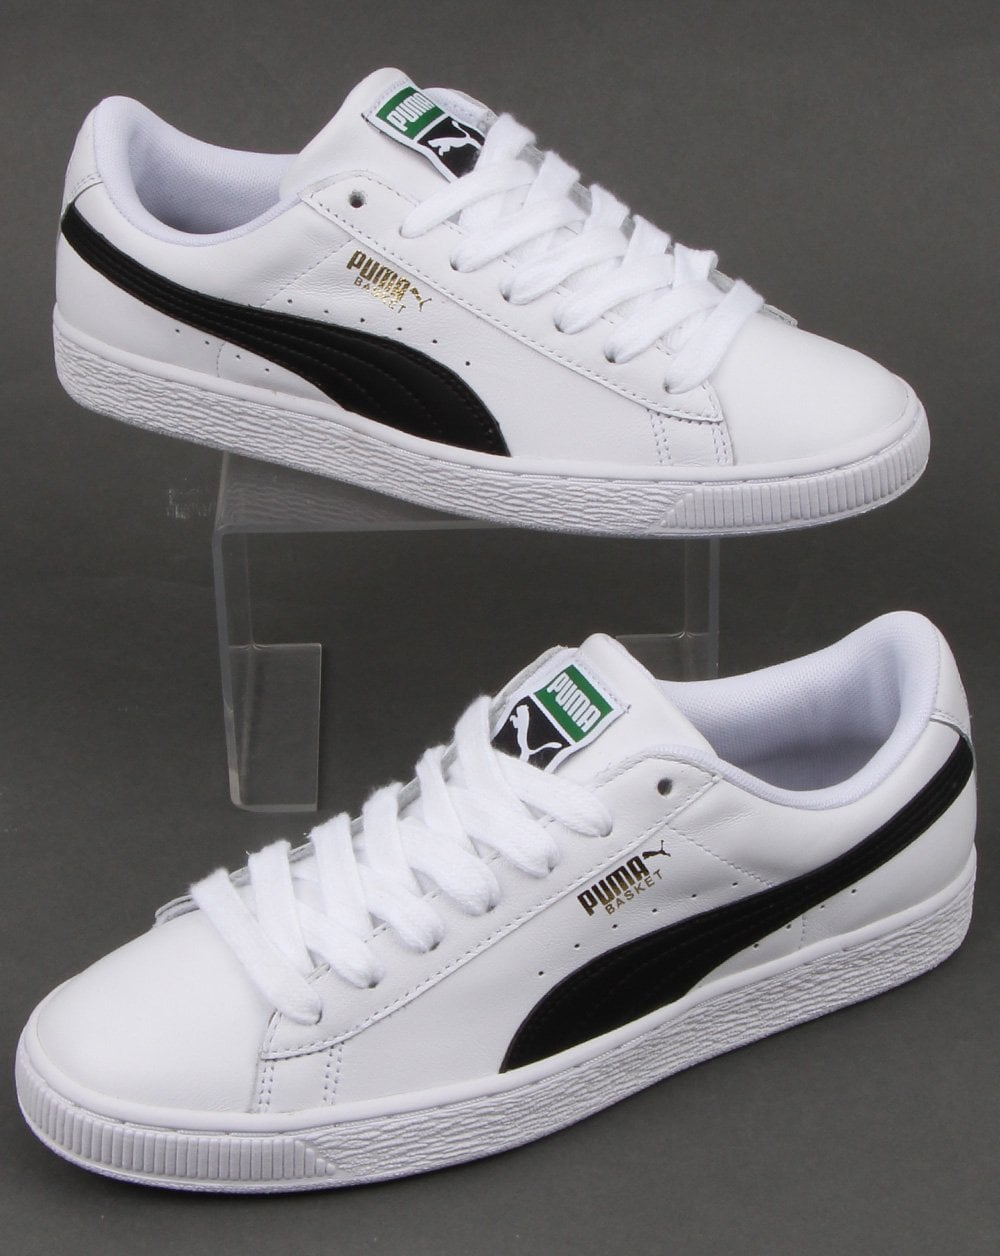 buy popular 8a6d1 0b83a Puma Basket Classic Lfs White/black